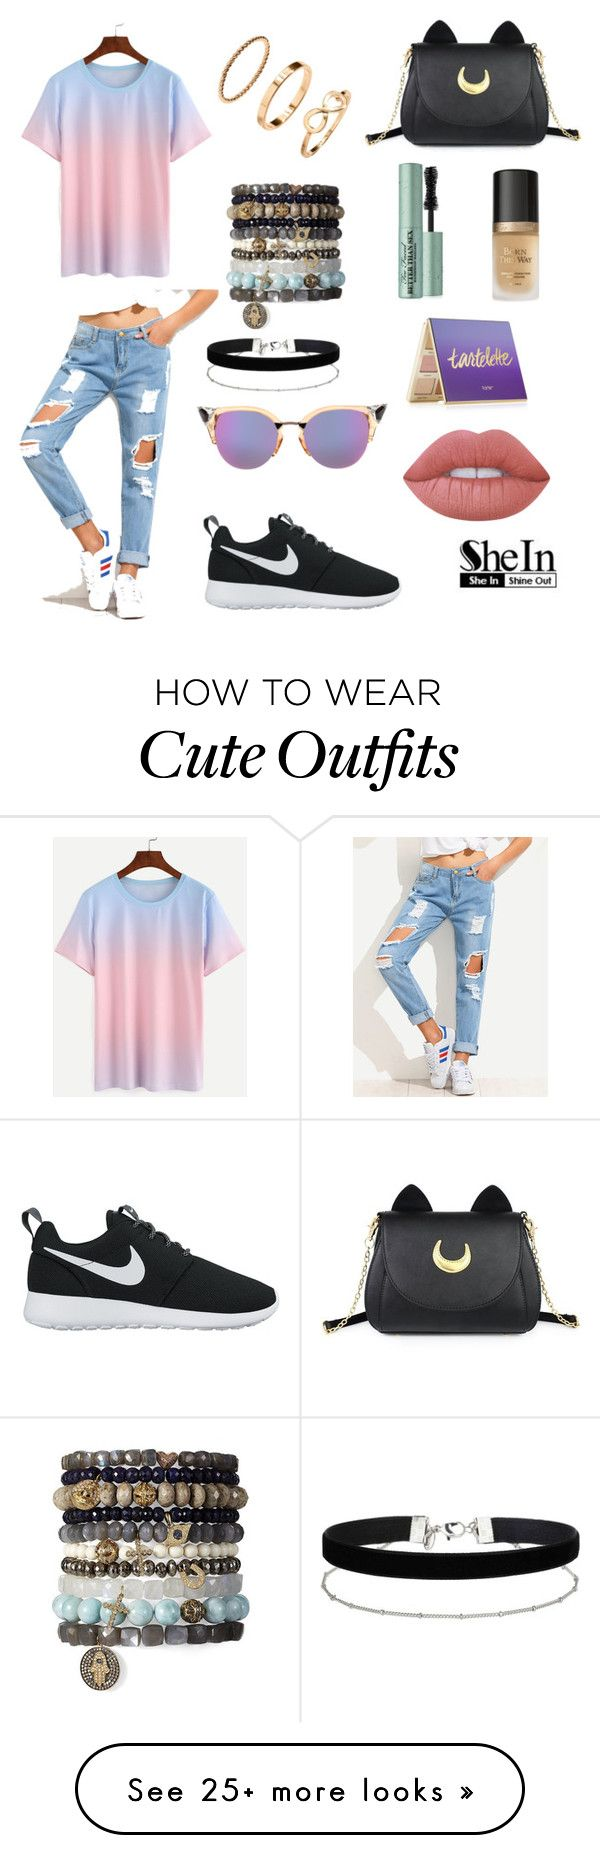 """""""pretty in pastels. nice and relaxed but cute outfit"""" by morganna15 on Polyvore featuring NIKE, Usagi, Fendi, Miss Selfridge, Lime Crime, tarte and Too Faced Cosmetics"""